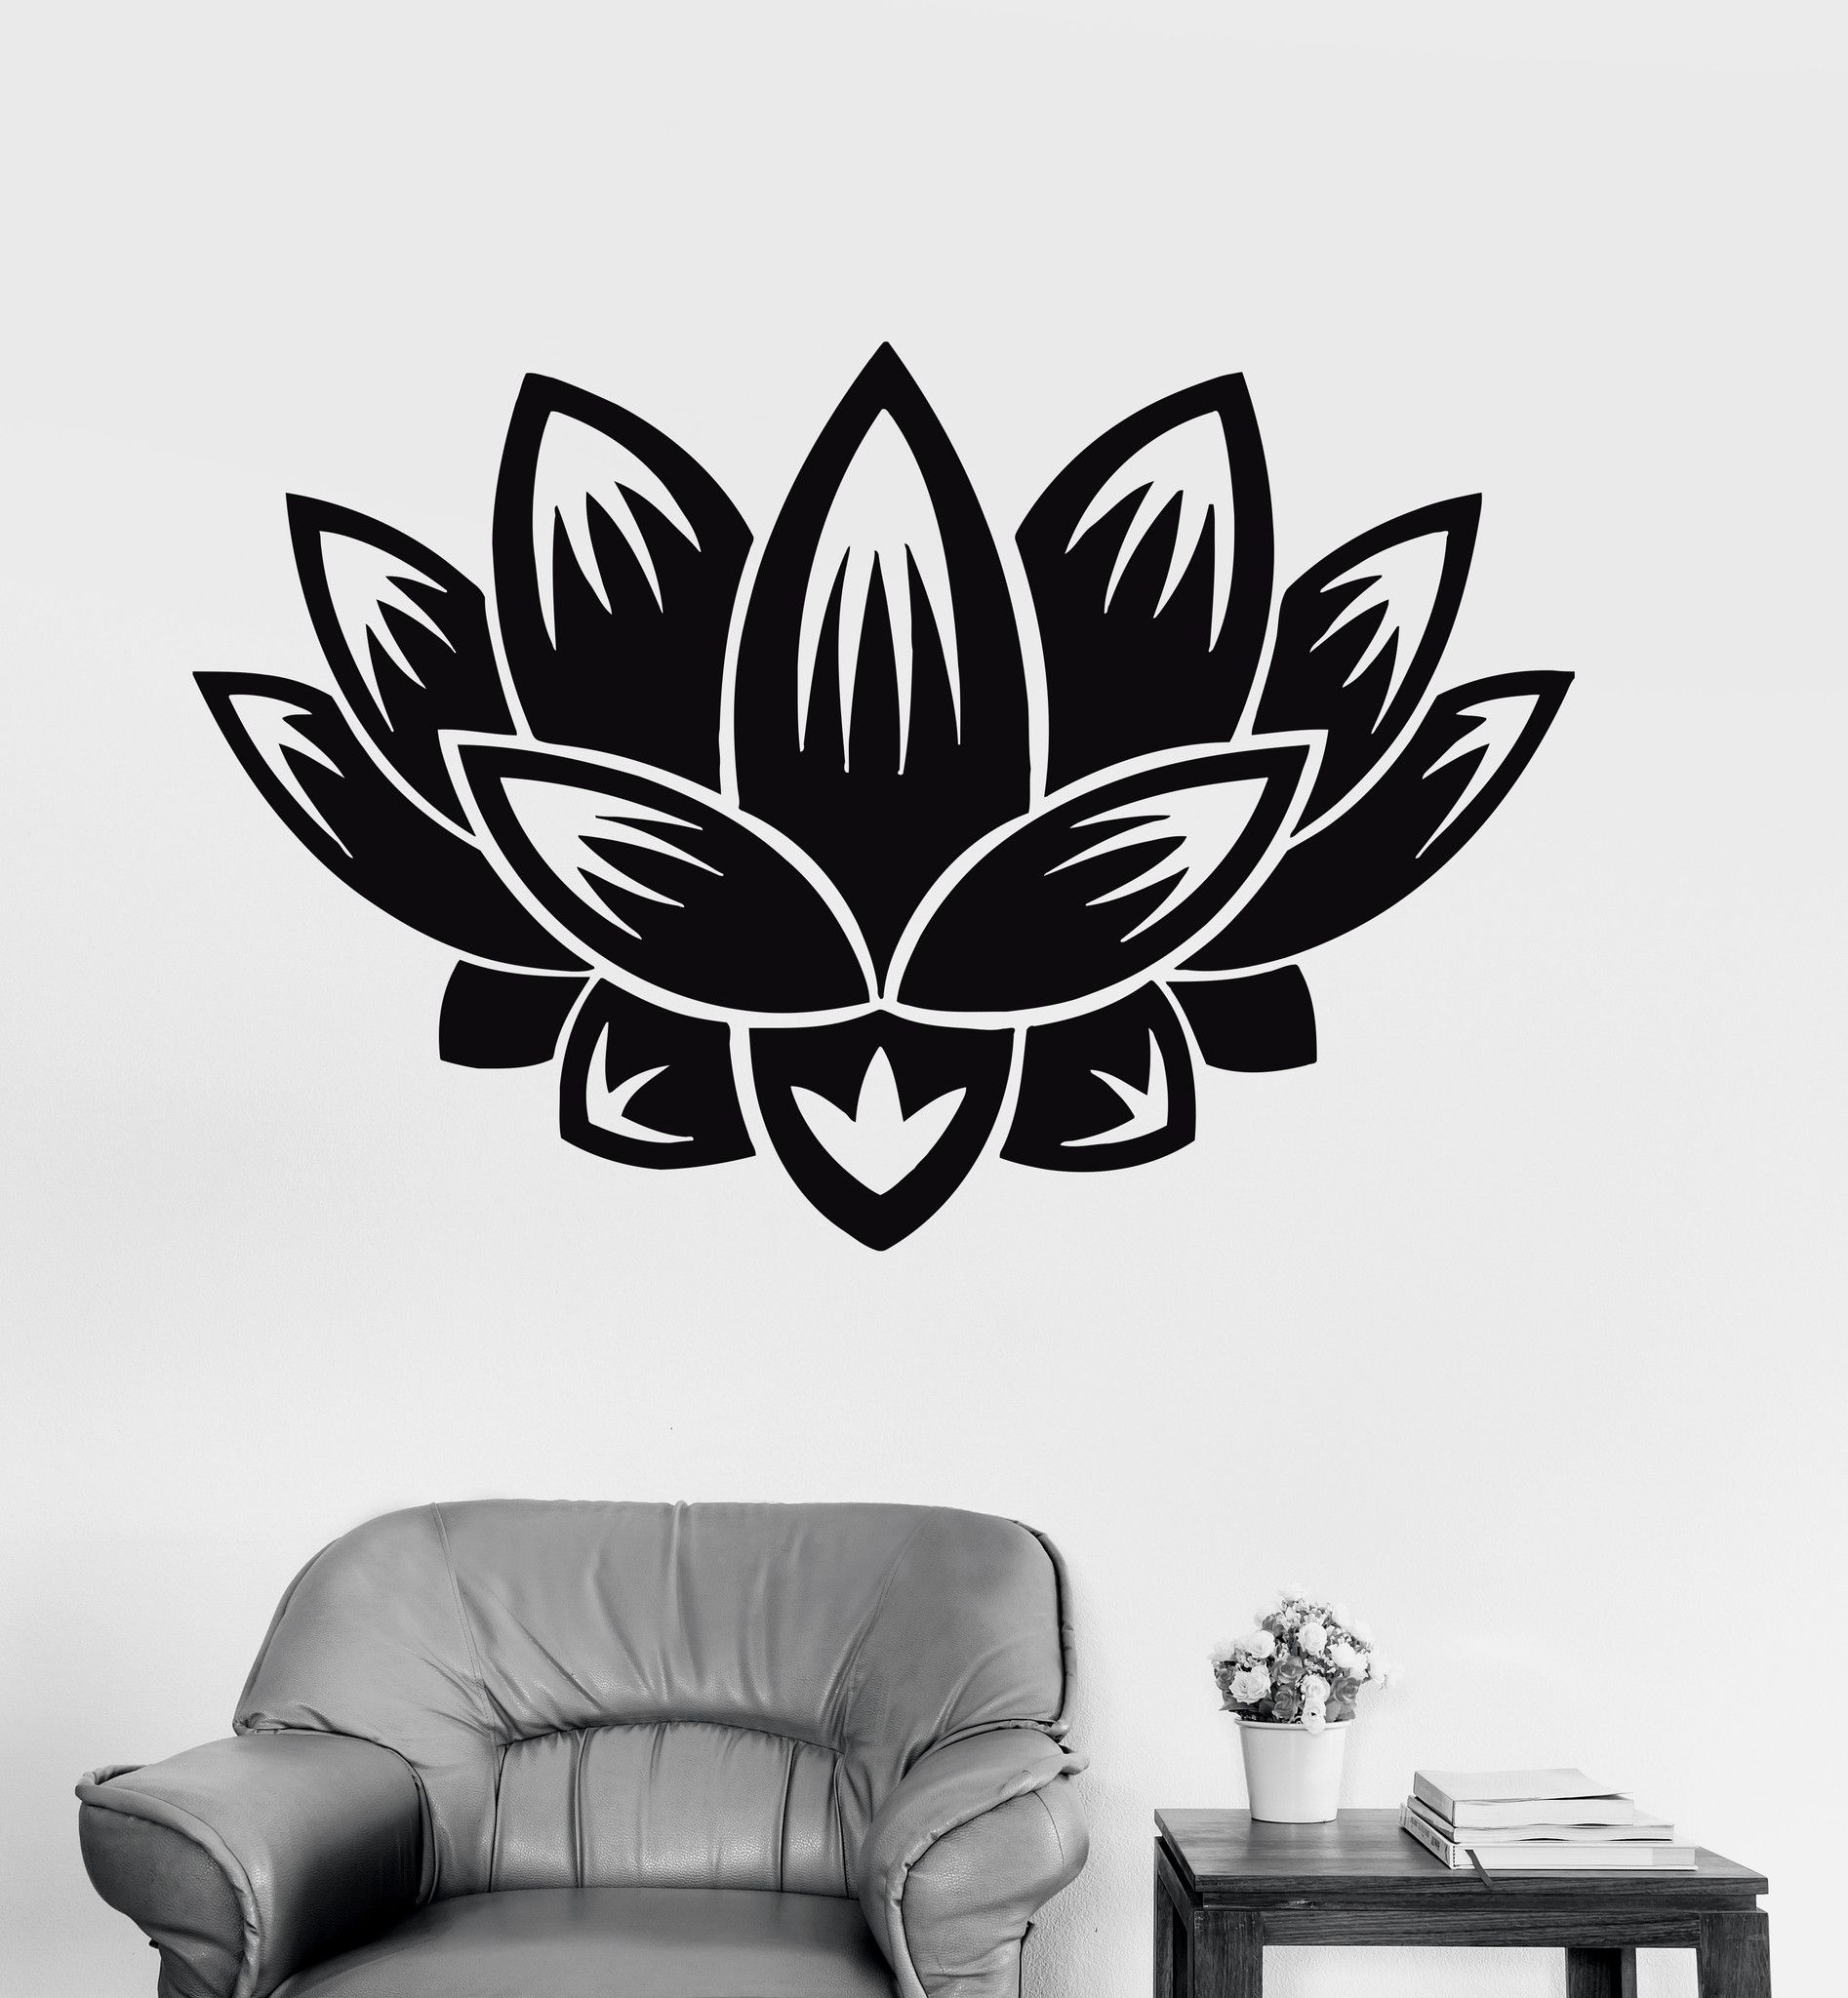 Vinyl Wall Decal Lotus Flower Buddhism Meditation Yoga Decor